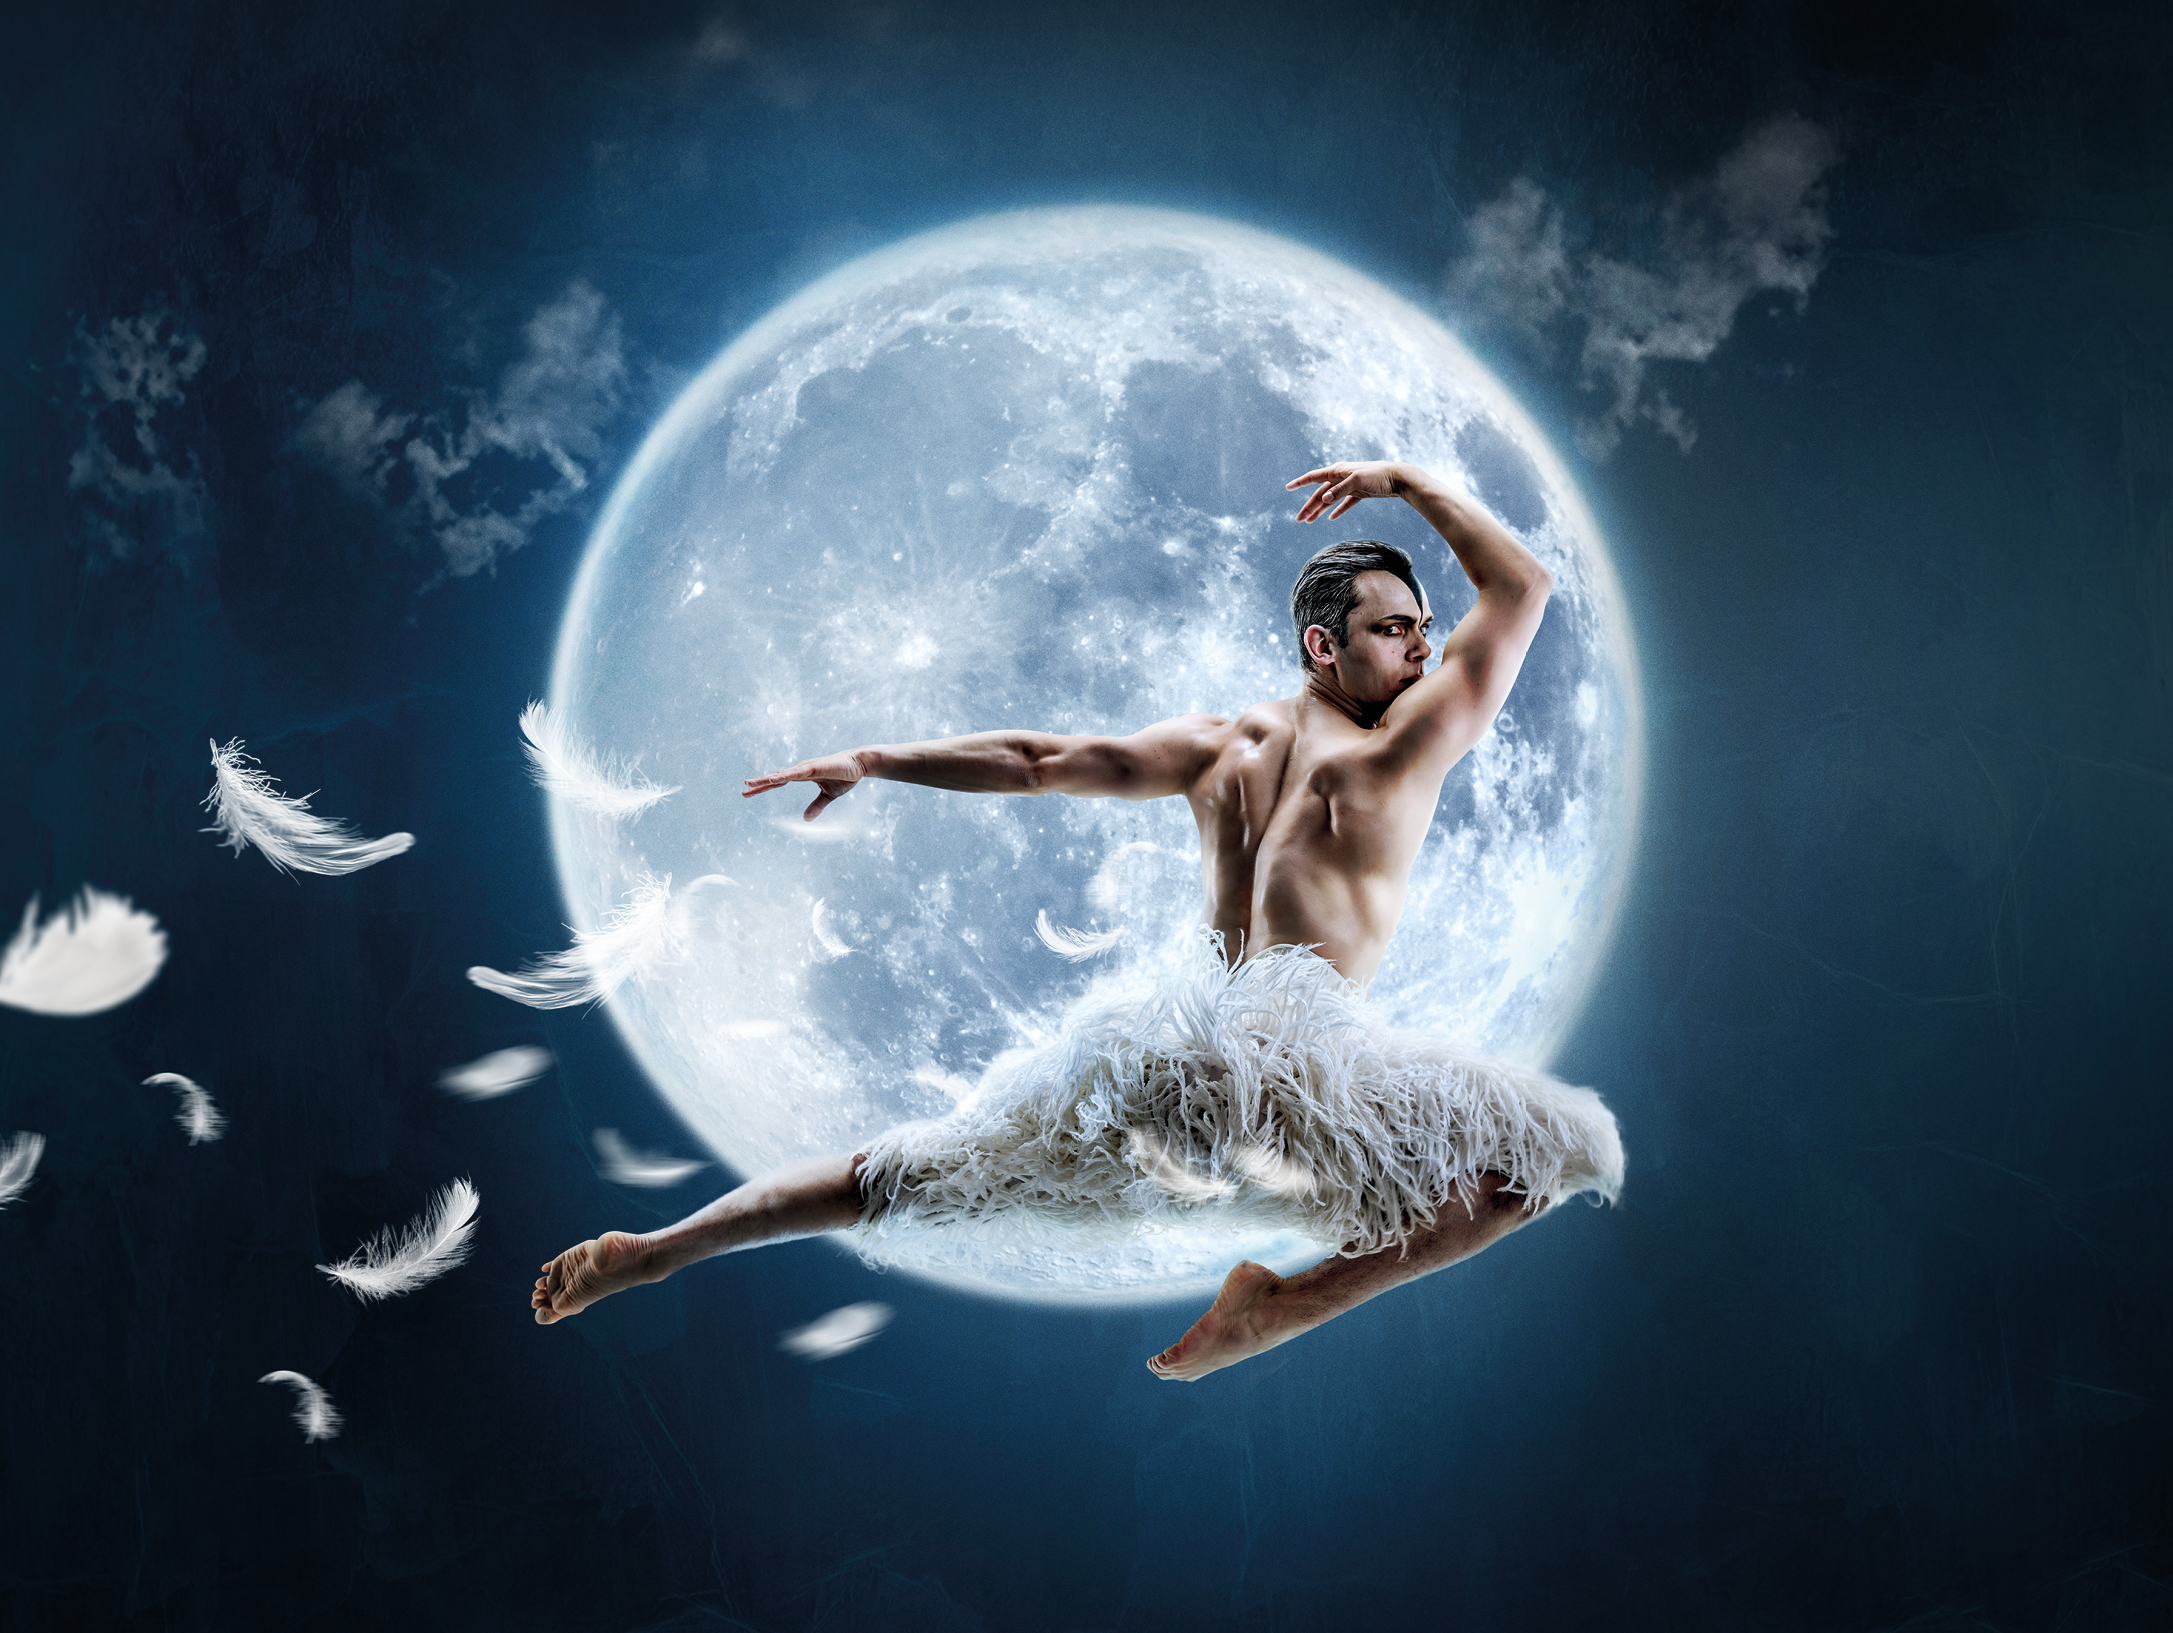 Matthew Bourne's Swan Lake. New Adventures production poster image showing a bare-chested male dancer leaping in front of a full moon.